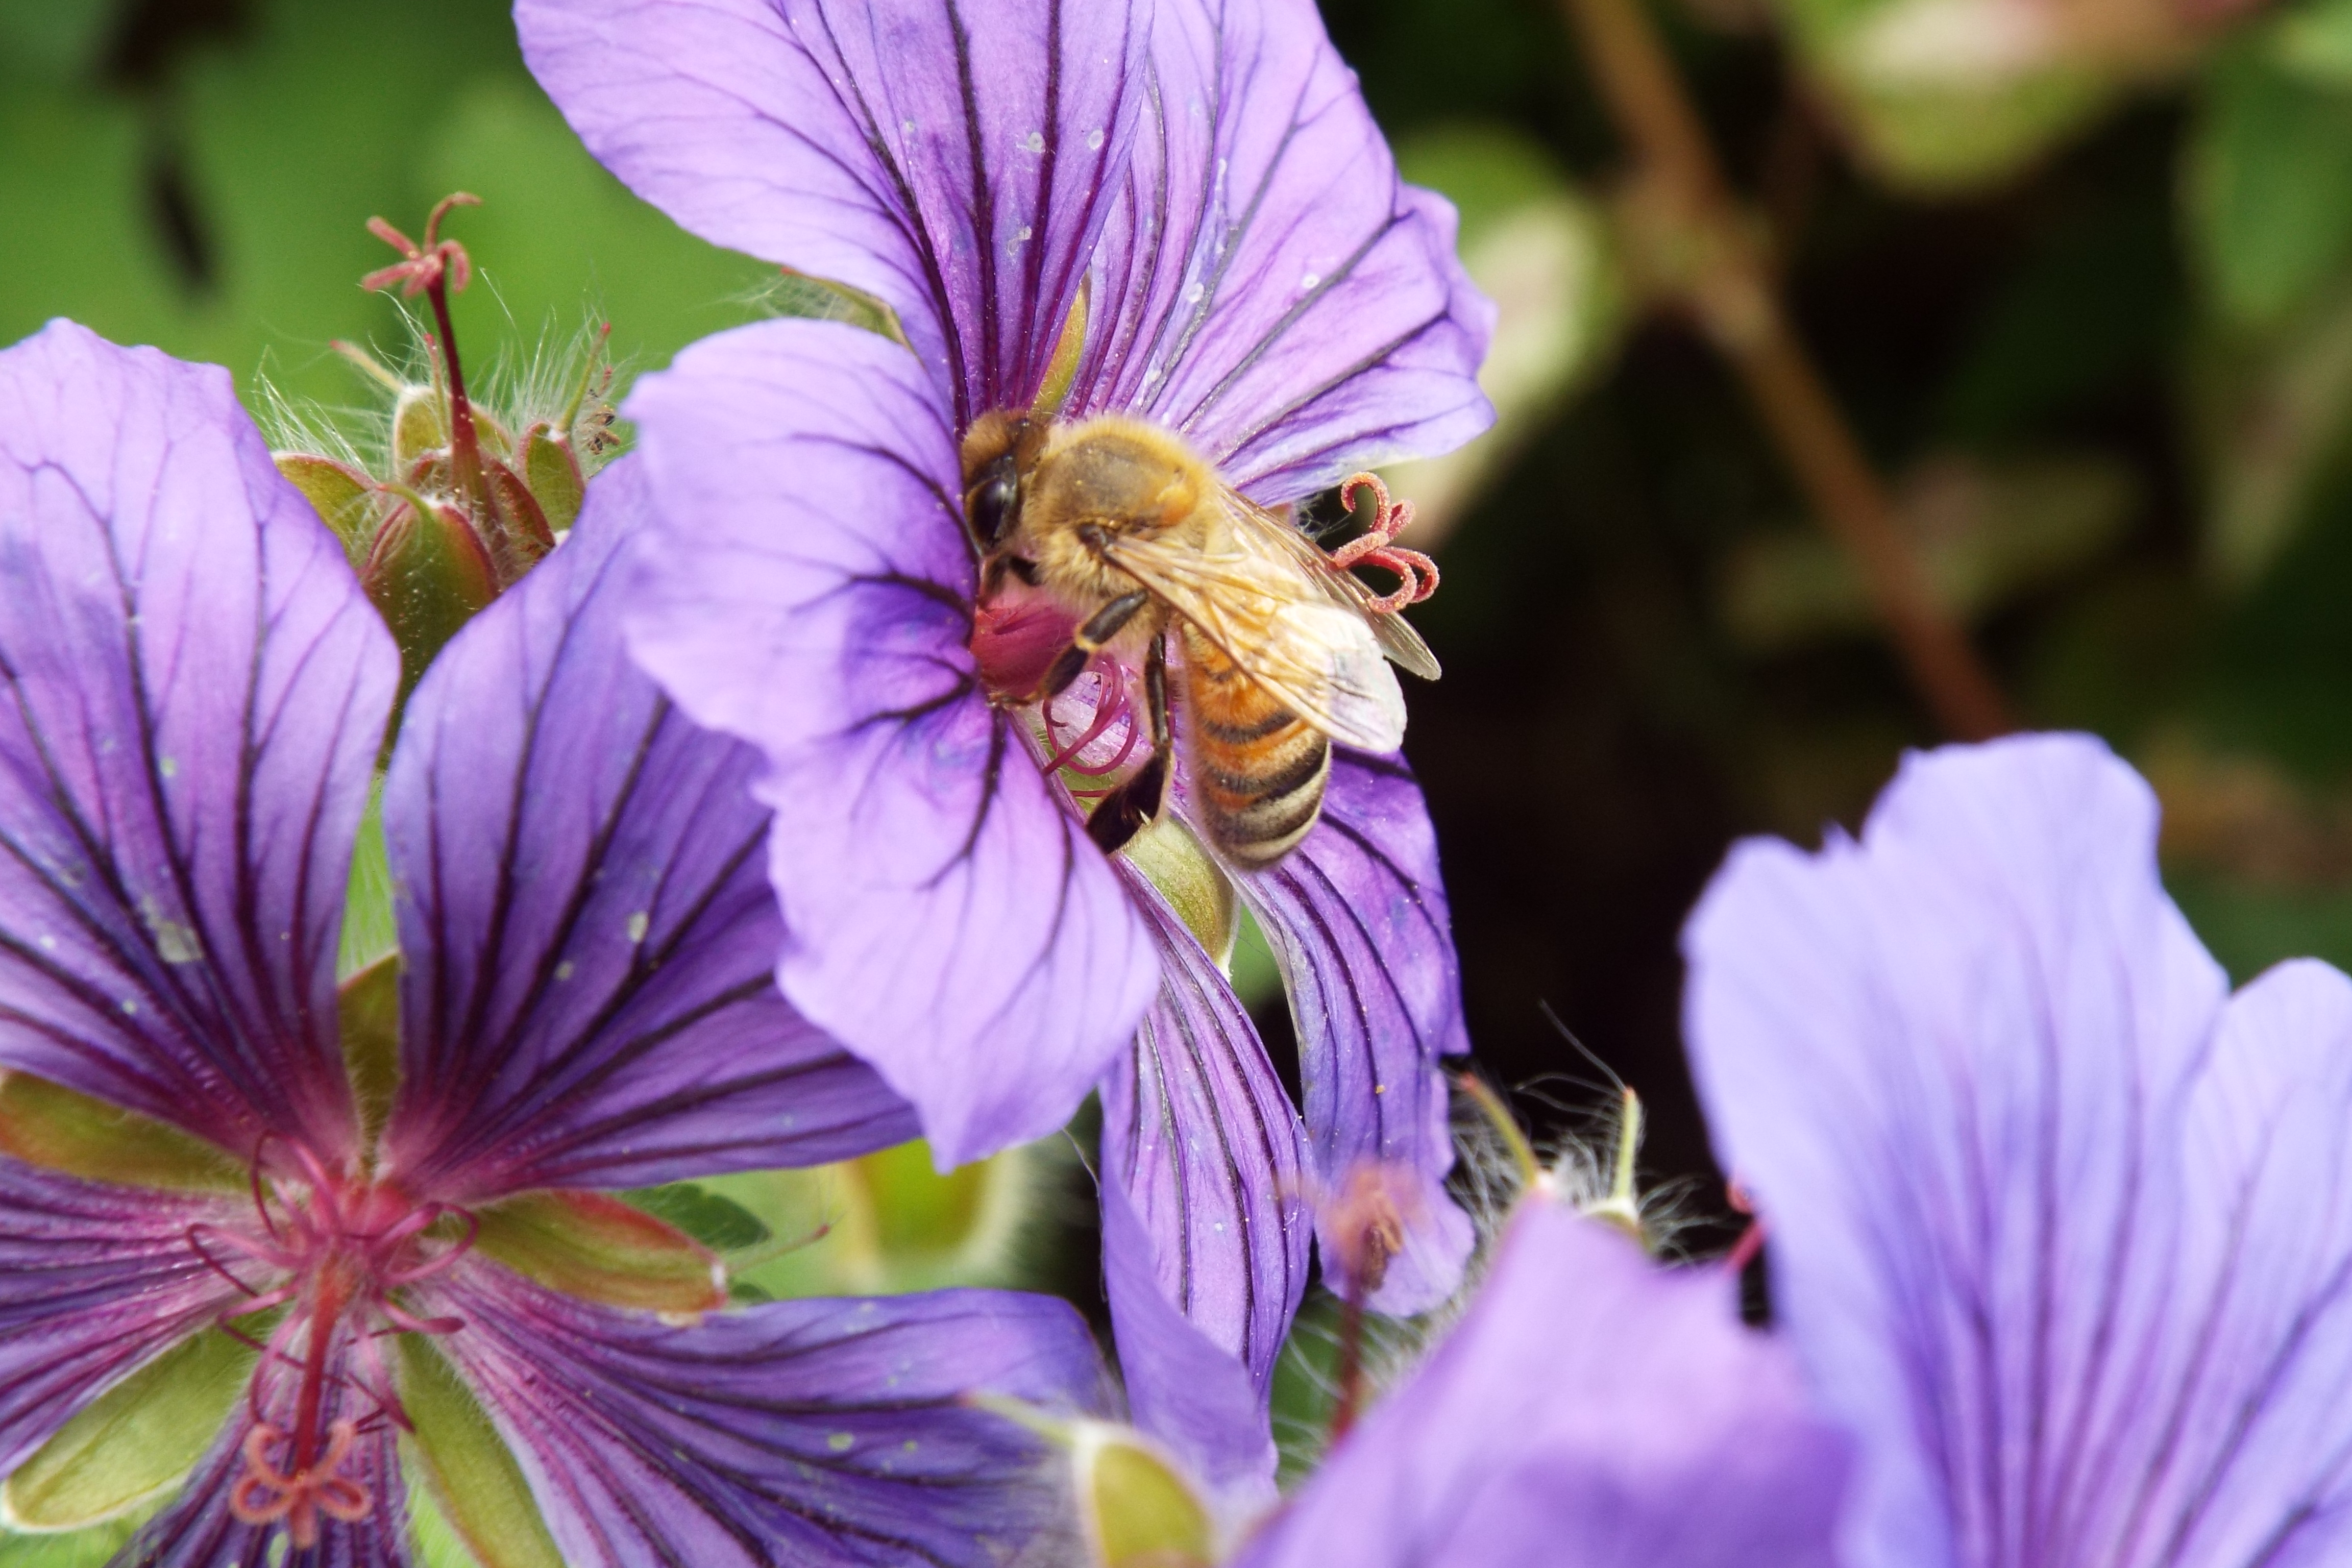 Healthy environment, healthy bees, healthy planet.